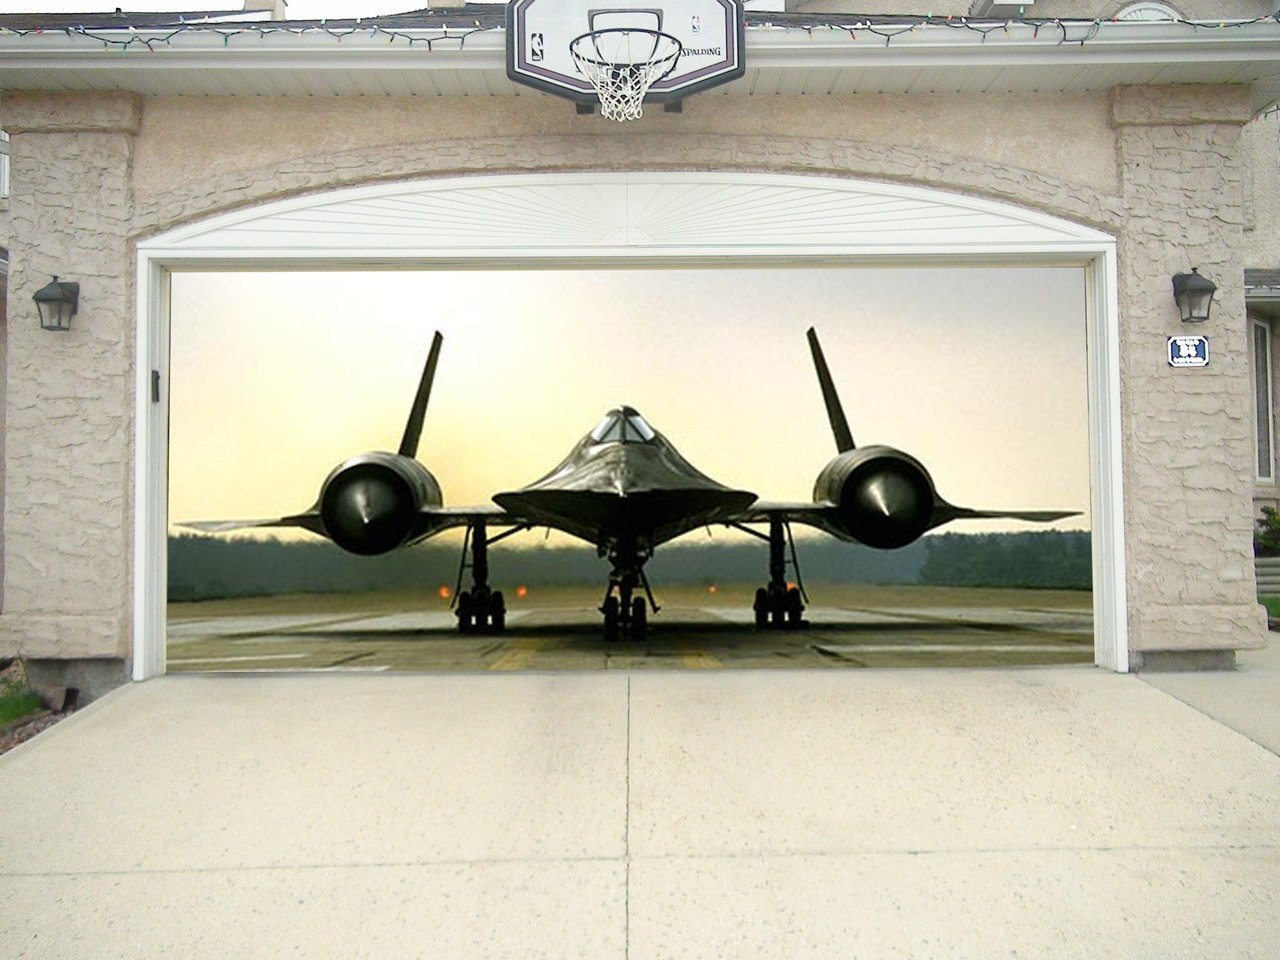 Re-Usable 3D Effect Garage Door Cover Billboard Sticker Decor Skin - SR71 Runway - Sizes to fit your Garage.